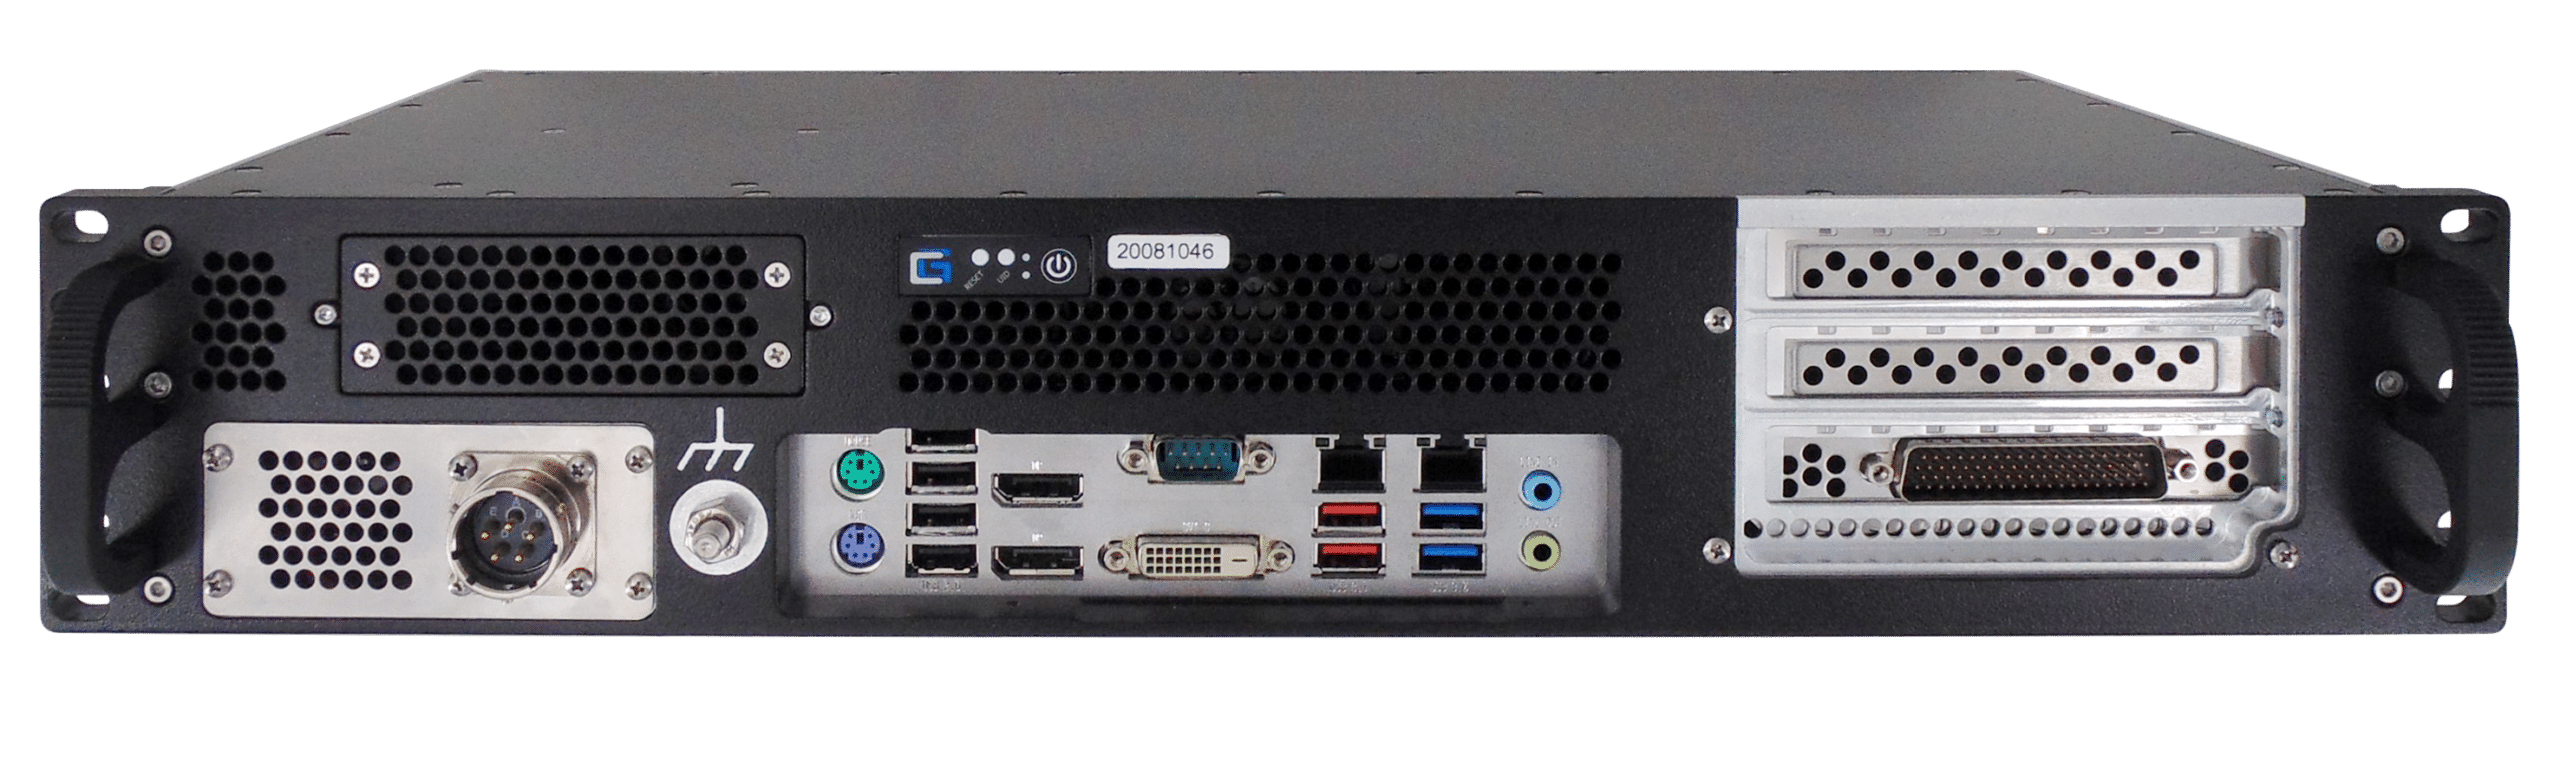 Crystal Group FORCE™ RS2301S8F Rugged 2U Workstation